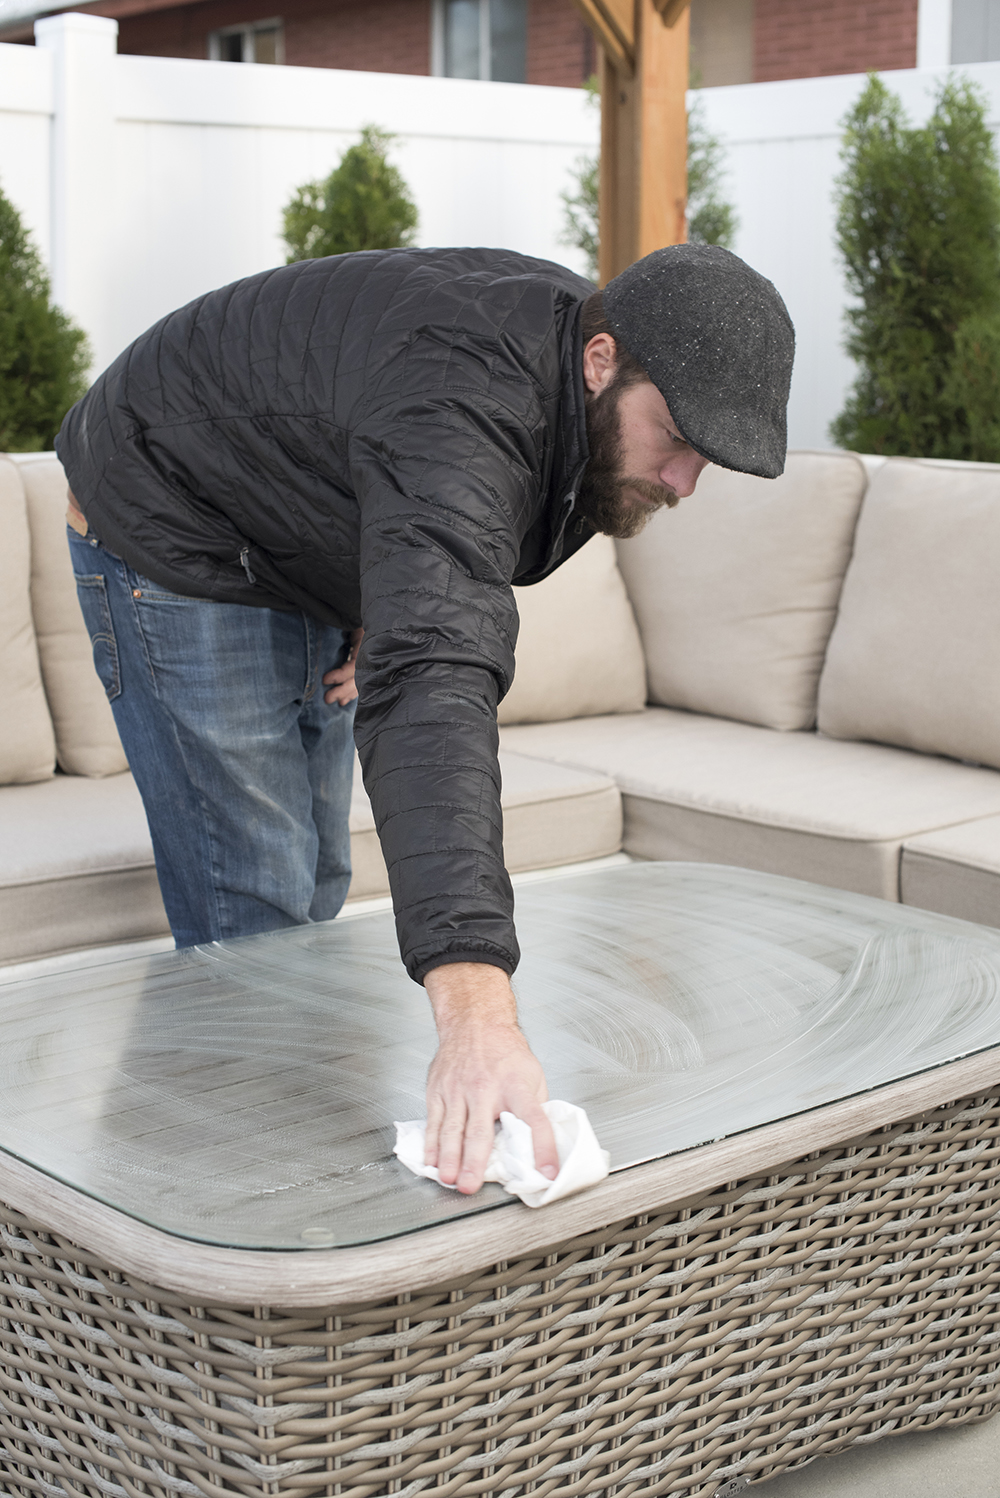 Cleaning an Outdoor Living Space